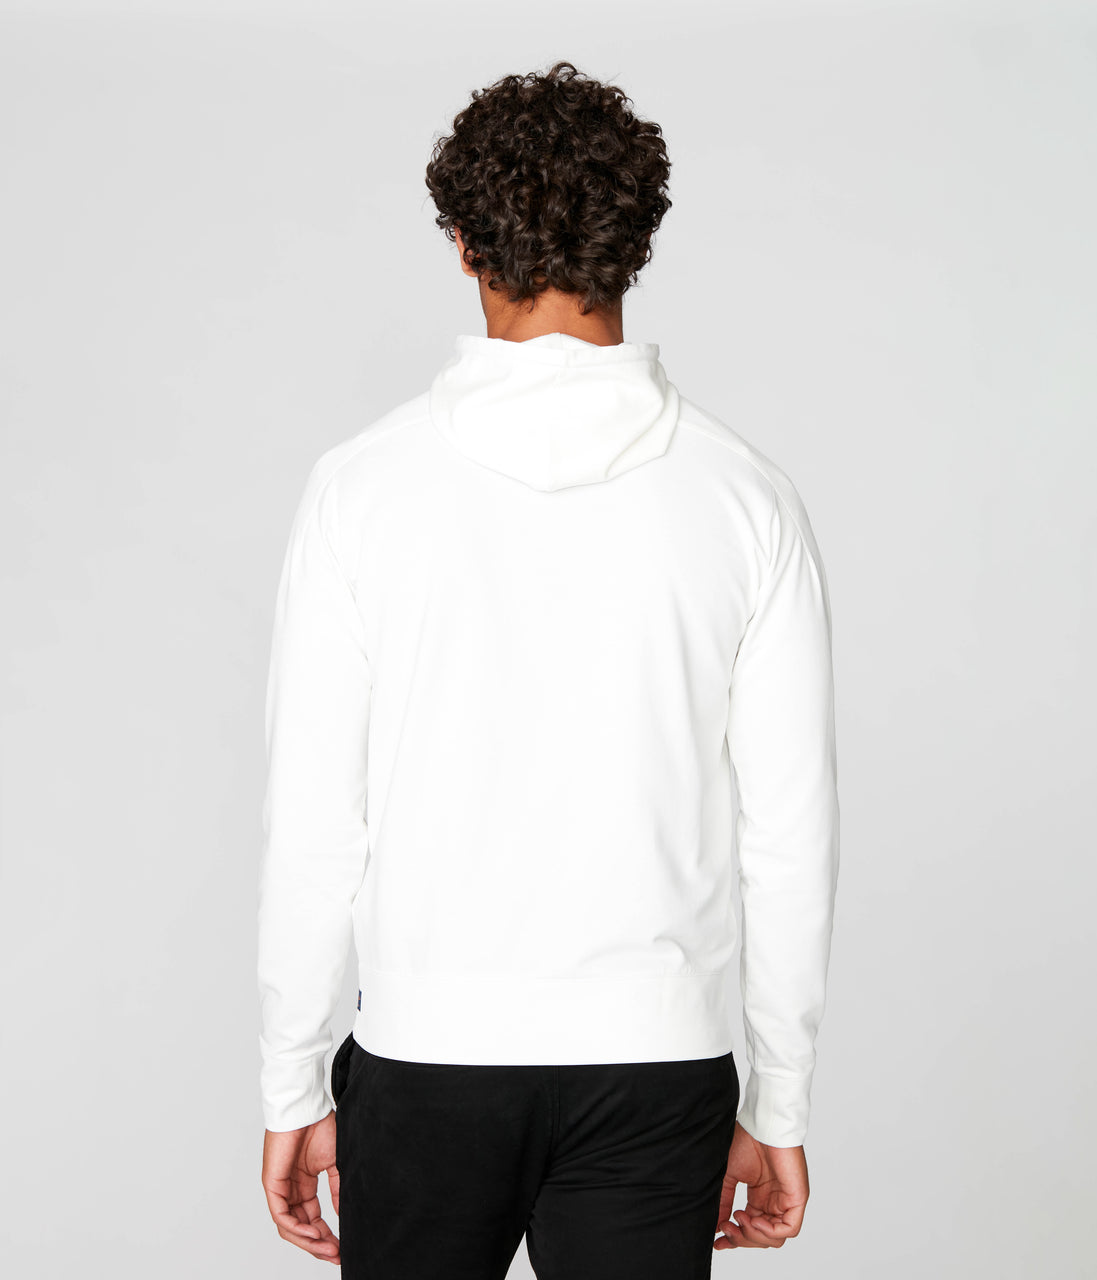 Tech Hoodie in Tech Ponte French Terry - Natural - Good Man Brand - Tech Hoodie in Tech Ponte French Terry - Natural